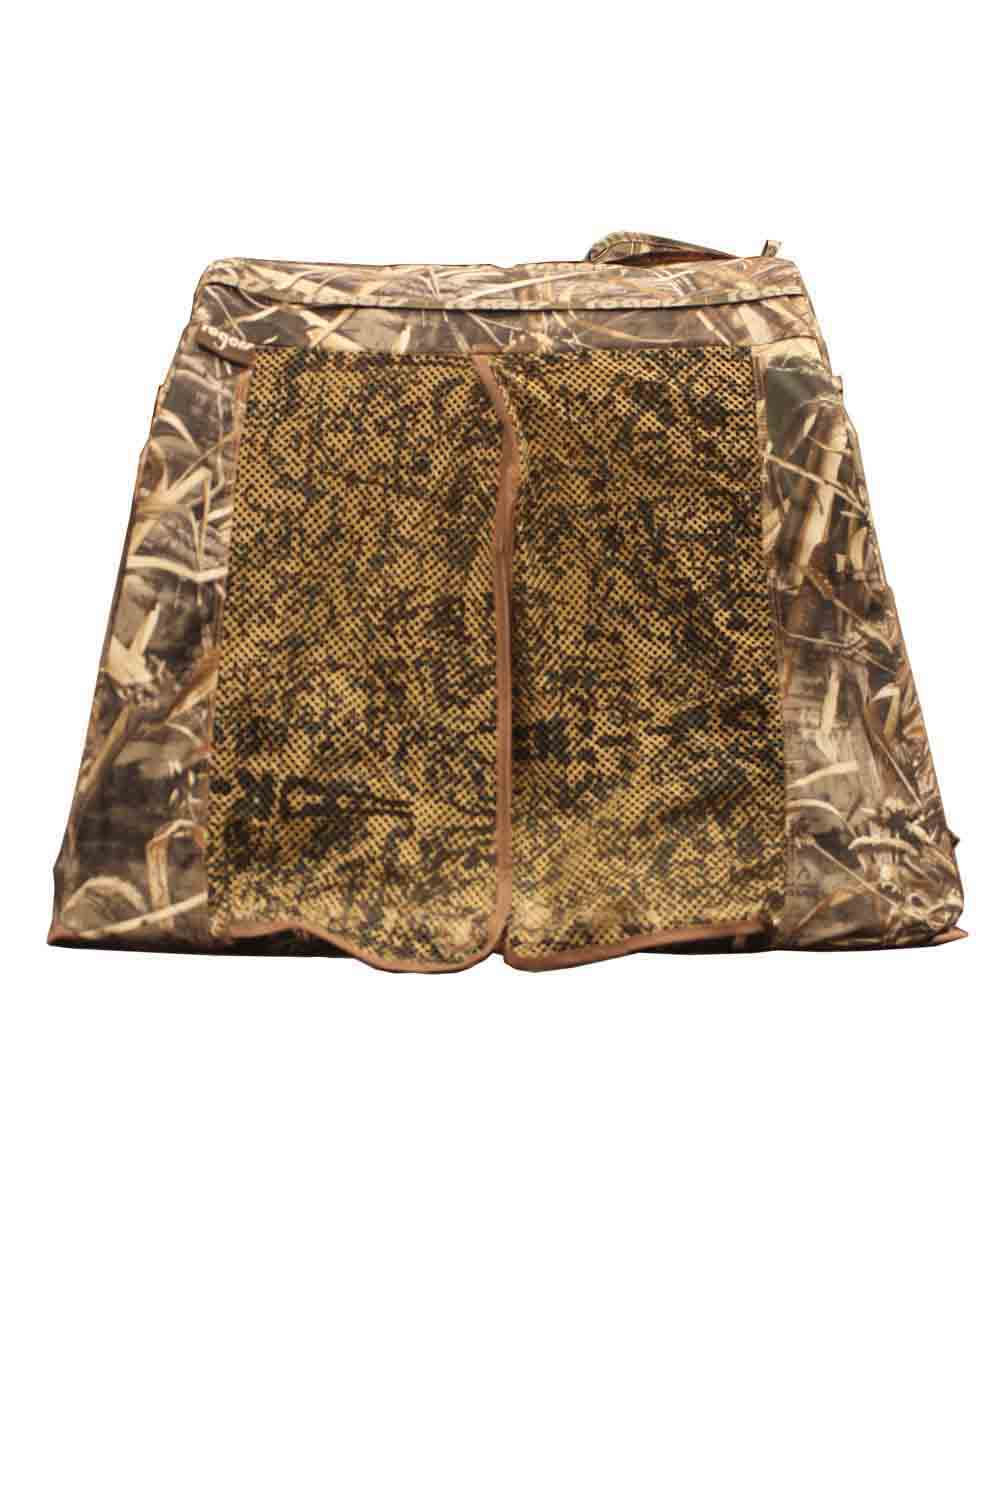 Rogers Pooch Palace XL Dog Blind in Realtree Max 5_6.jpg